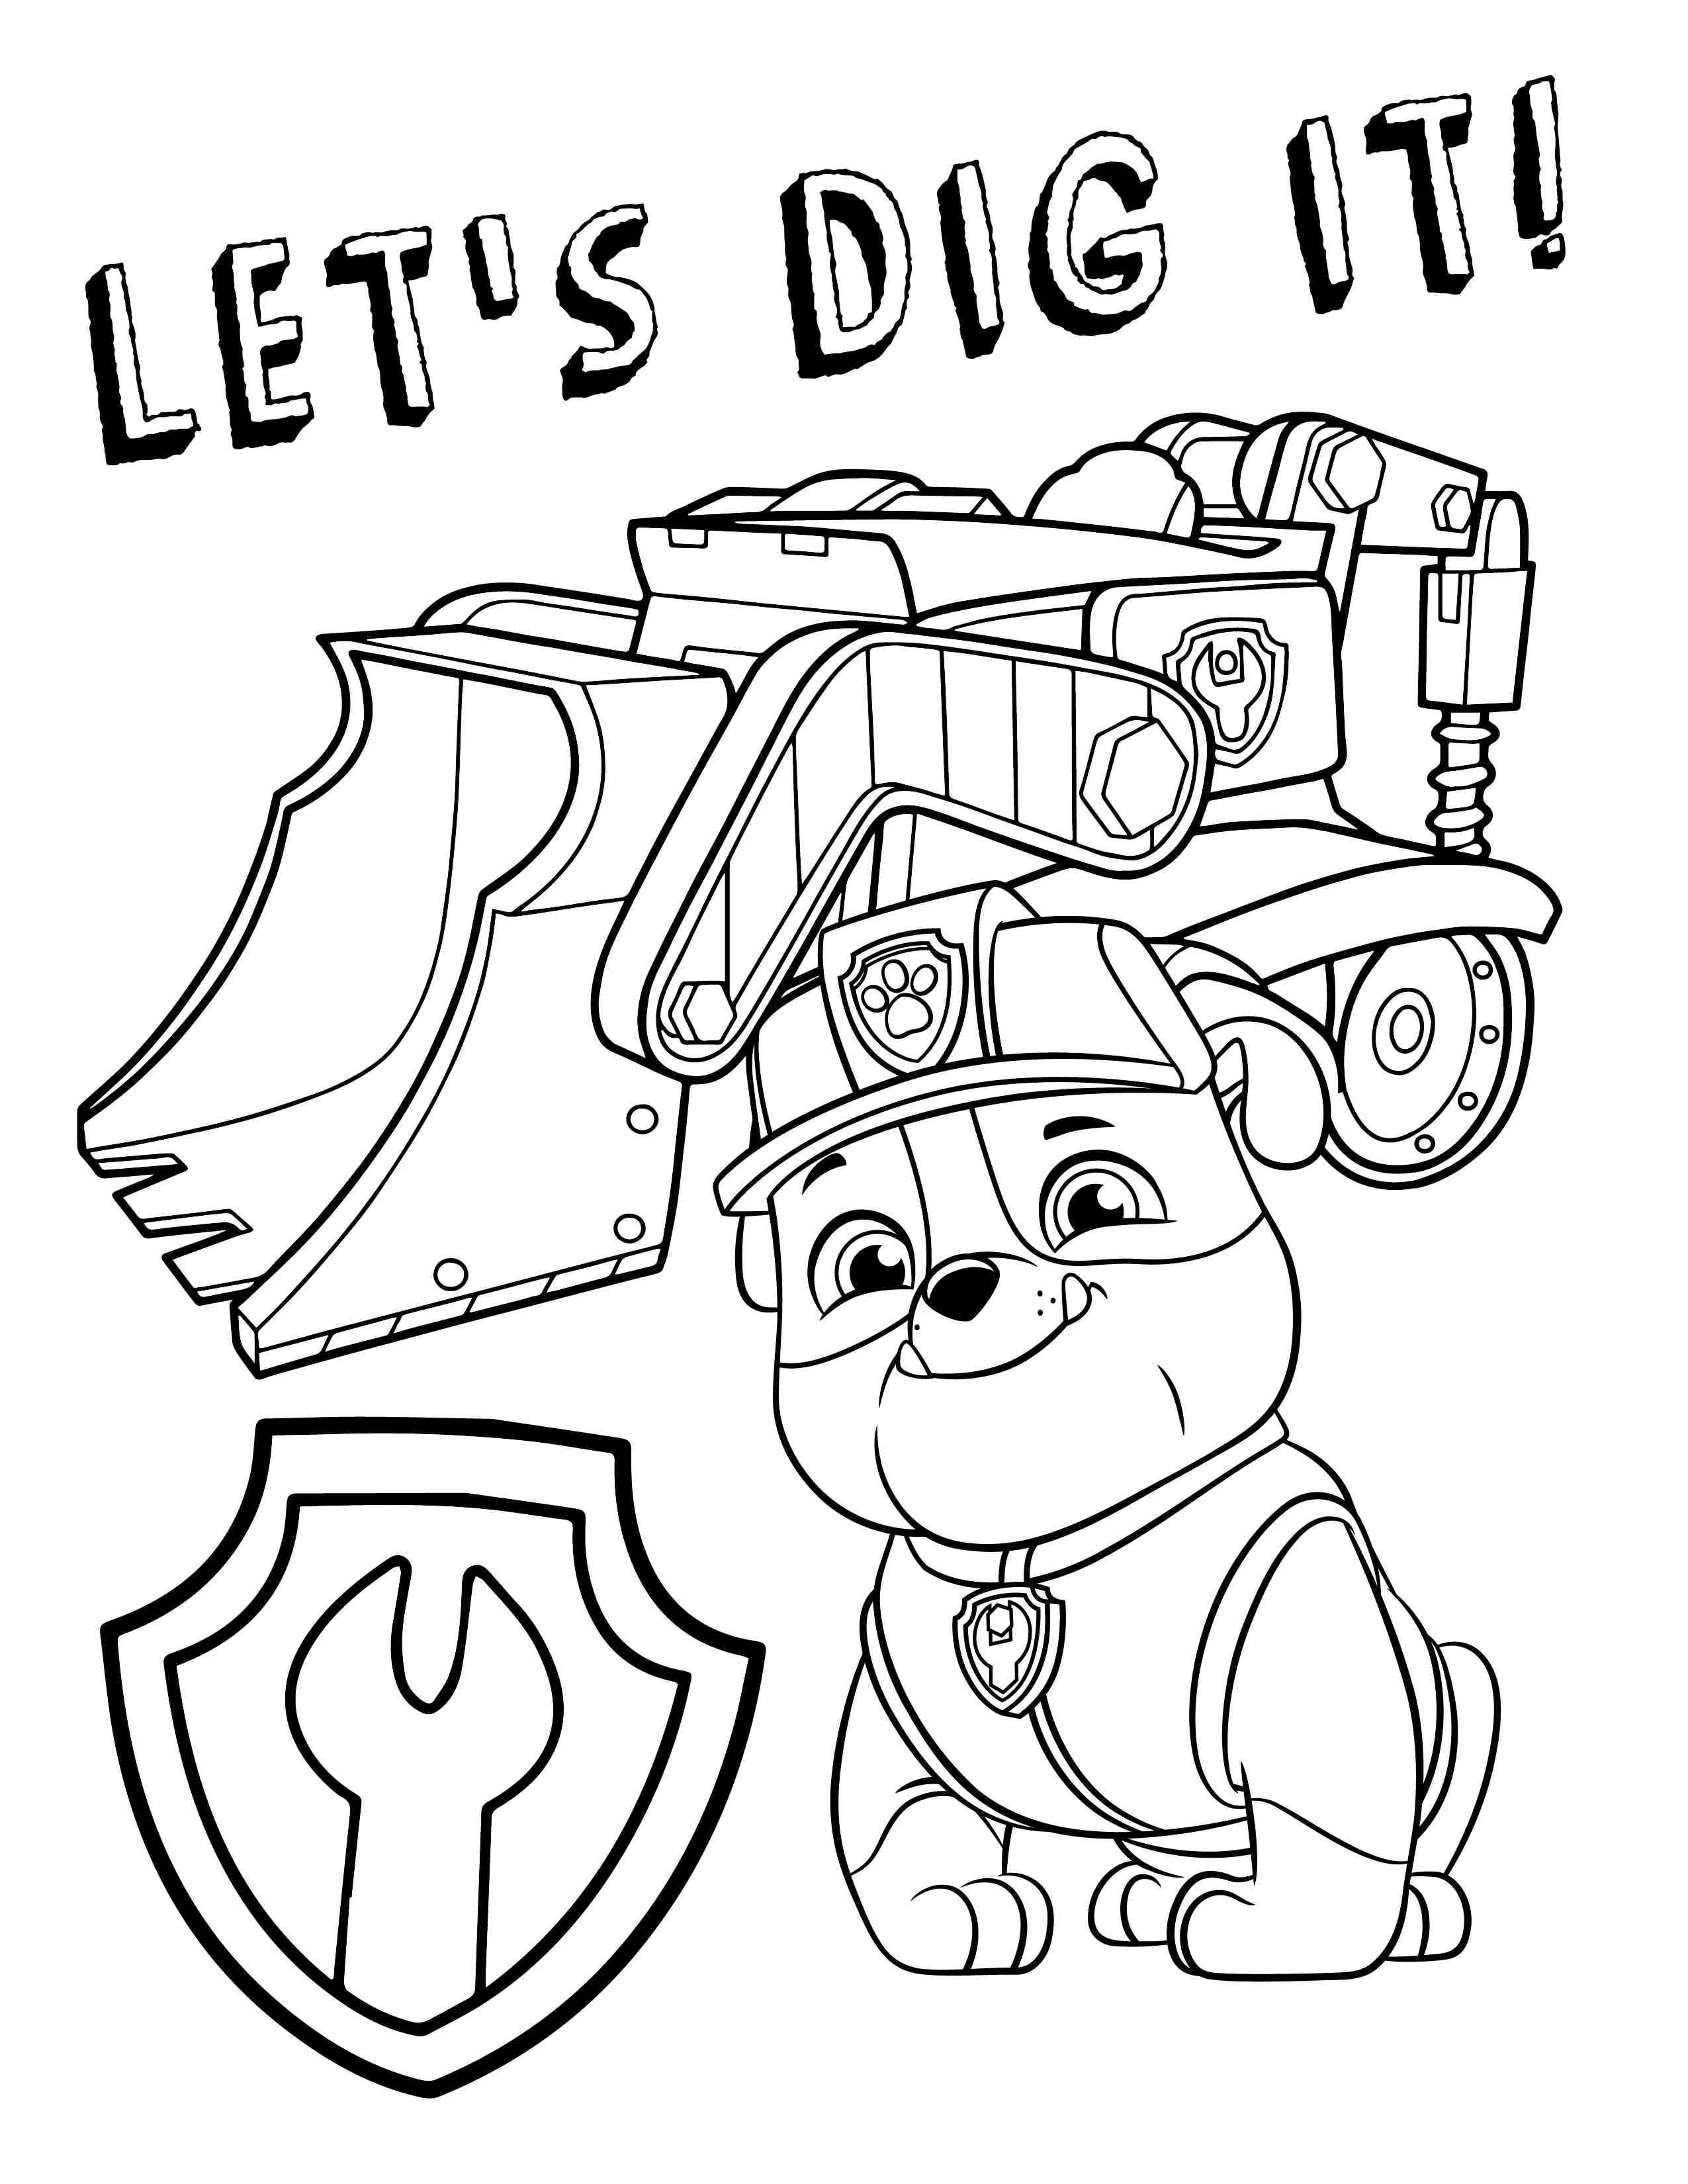 paw patrol coloring rubble superb coloring rubble coloring pages falcoaircraftorg rubble paw patrol coloring